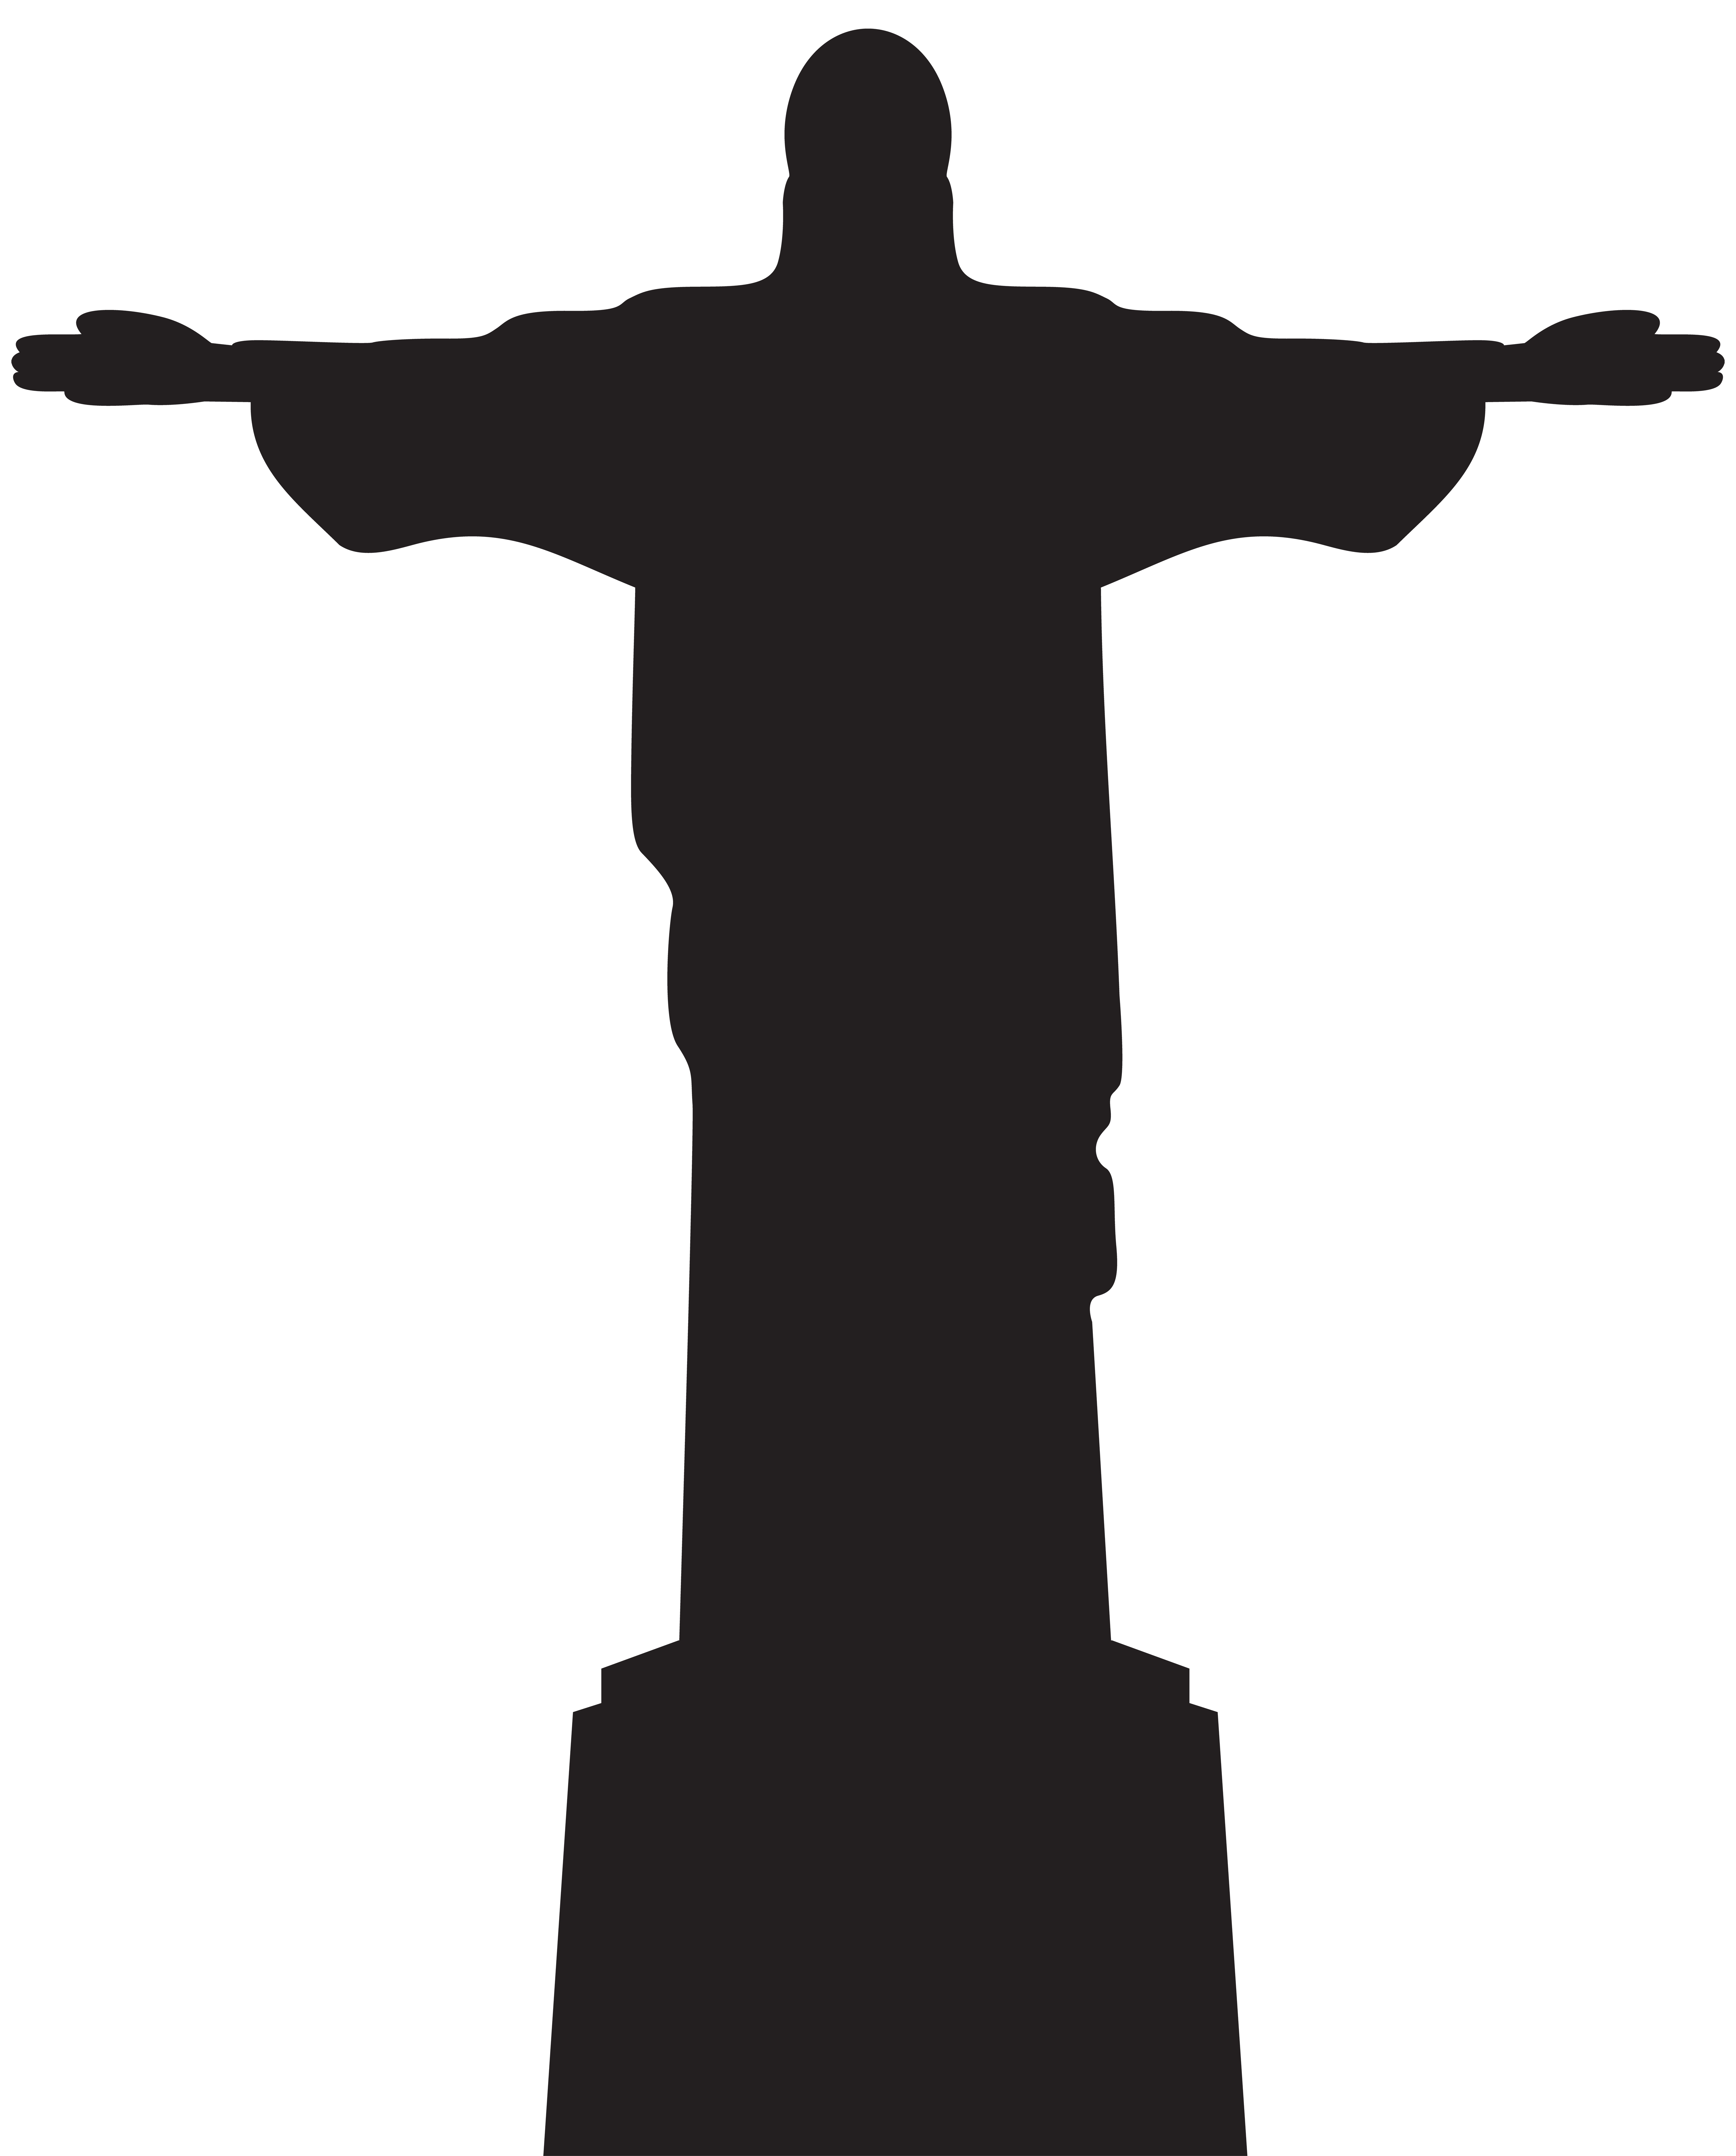 Christ silhouette clipart clipart library download Christ the Redeemer Corcovado Statue - Jesus Christ Statue ... clipart library download